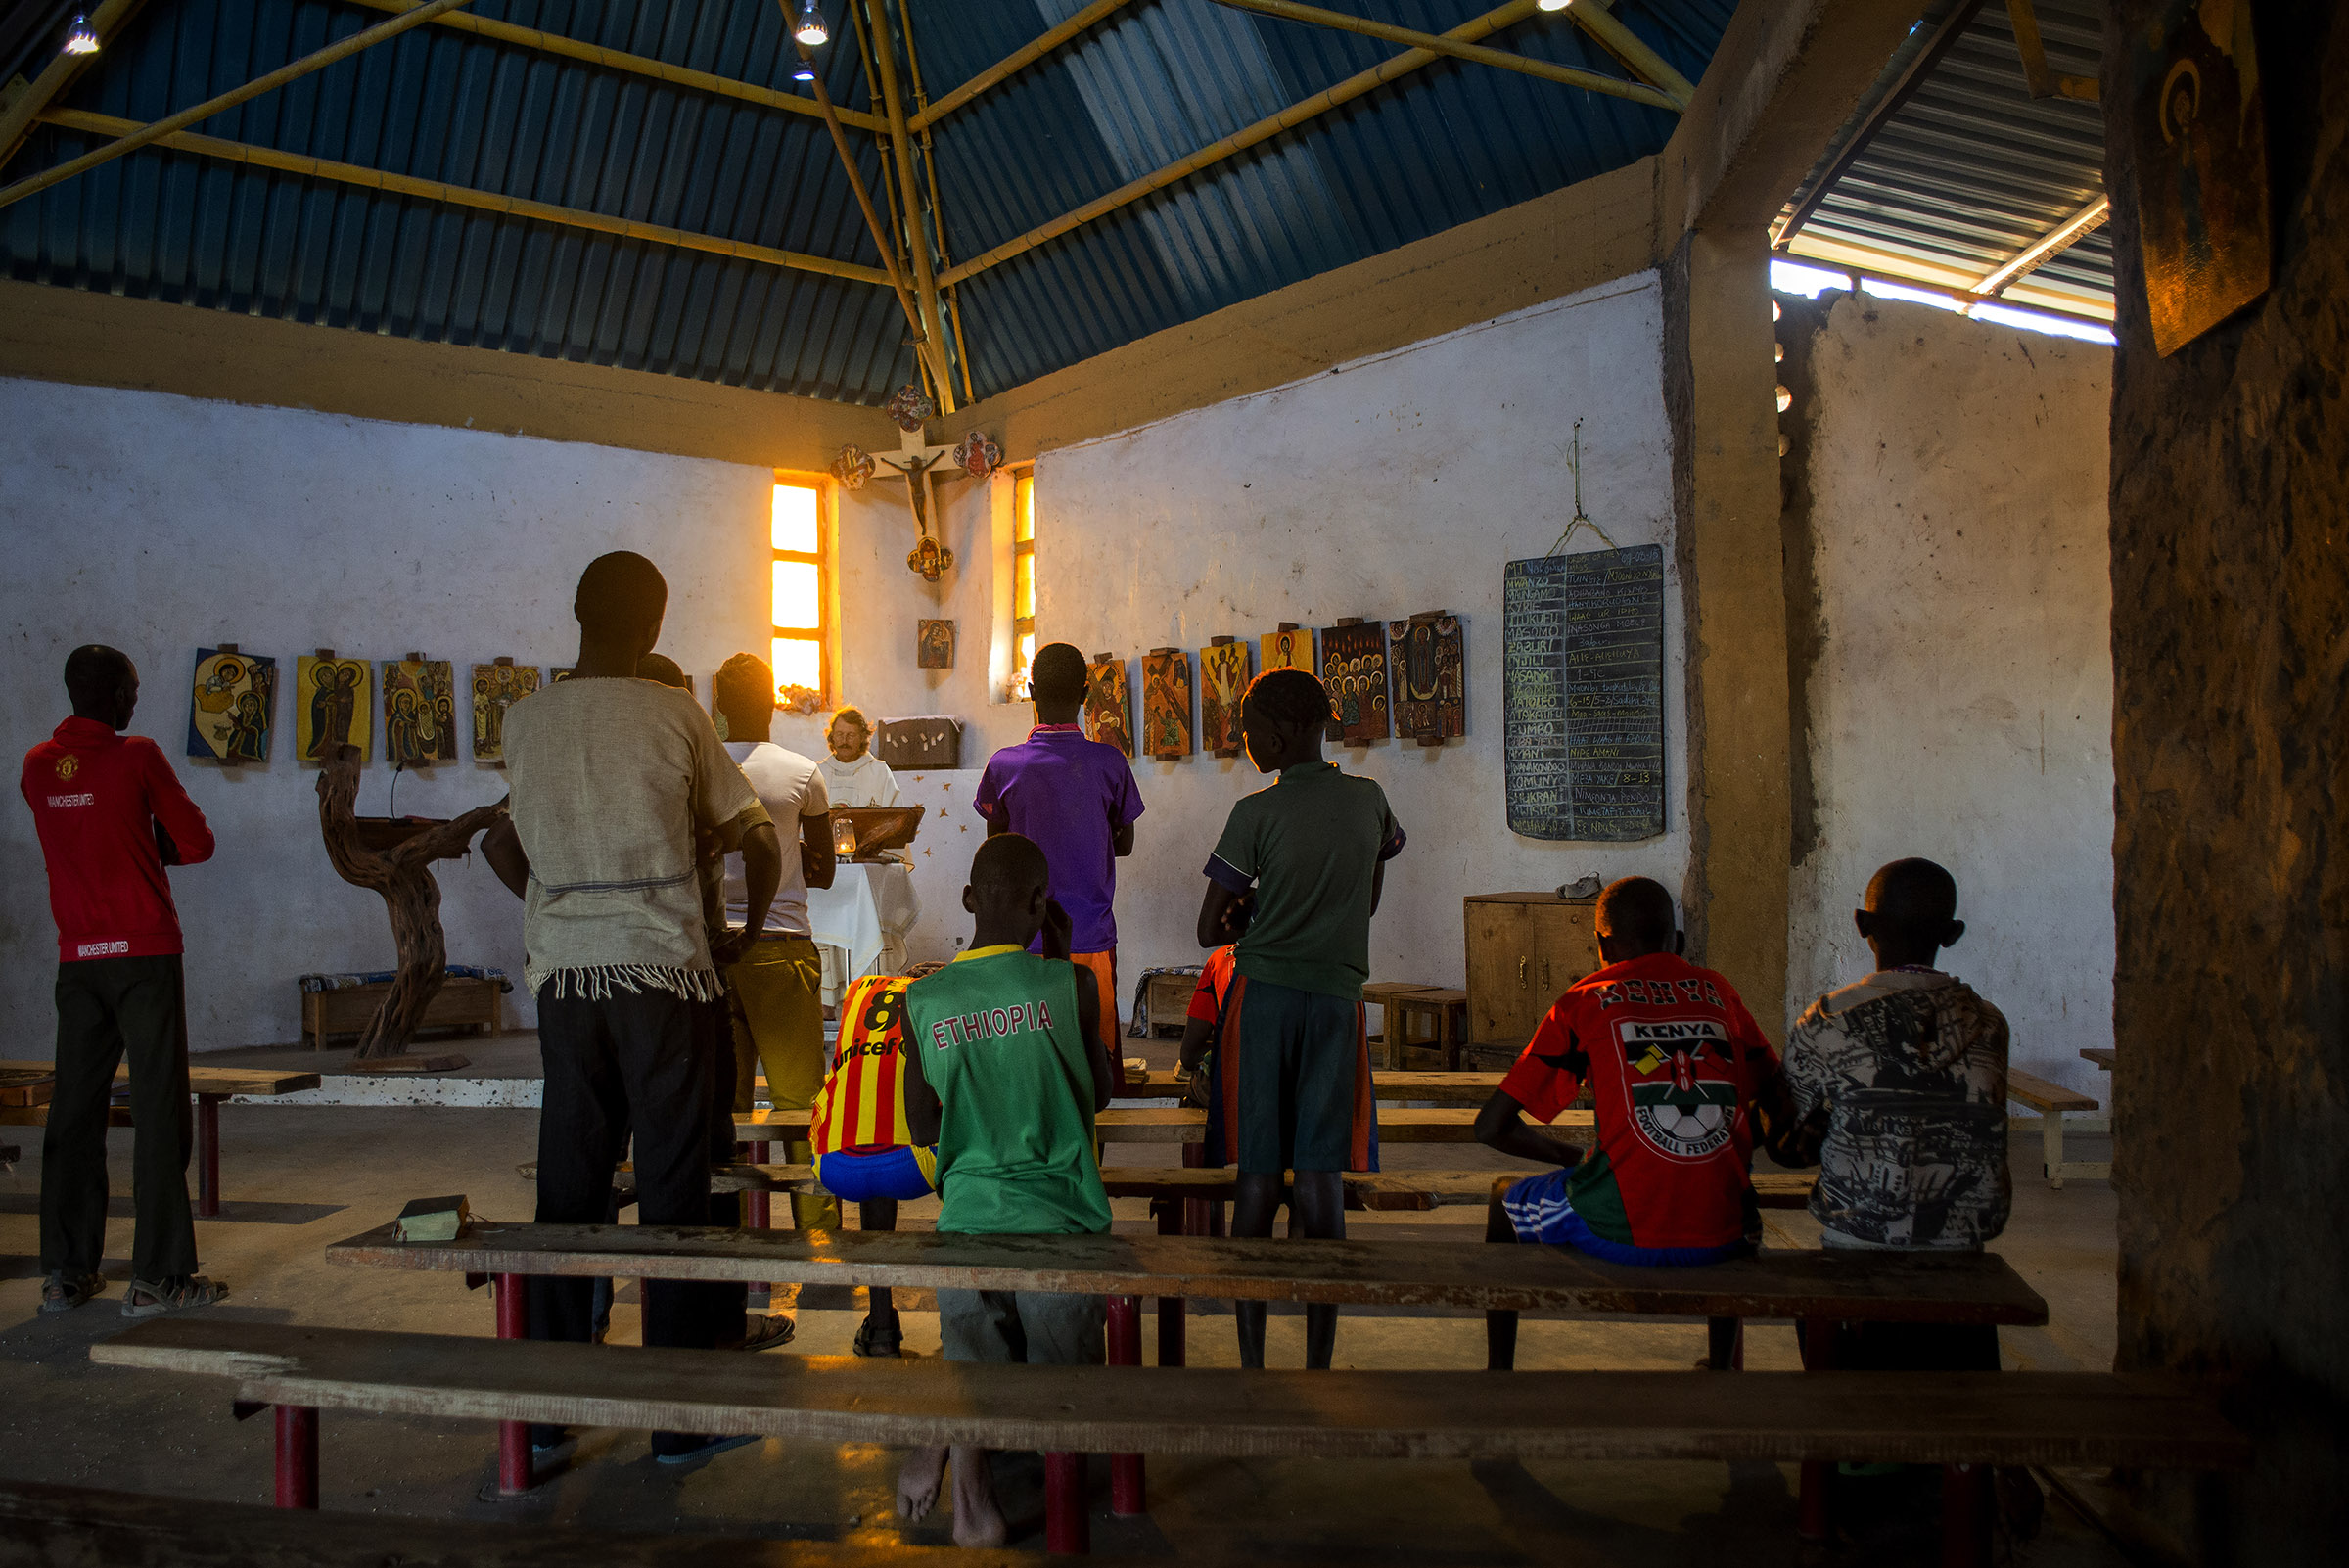 """Father Florian gives an afternoon service in Illeret, Kenya. He took his vows at St. Ottilien Archabbey, where he adopted the Benedictines' unofficial motto, """"Ora et Labora"""" — """"Pray and Work."""" This has become his mantra for his time with Kenya's ethnic Daasanach community, one of the smallest tribes in Kenya. (Christena Dowsett/The GroundTruth Project)"""